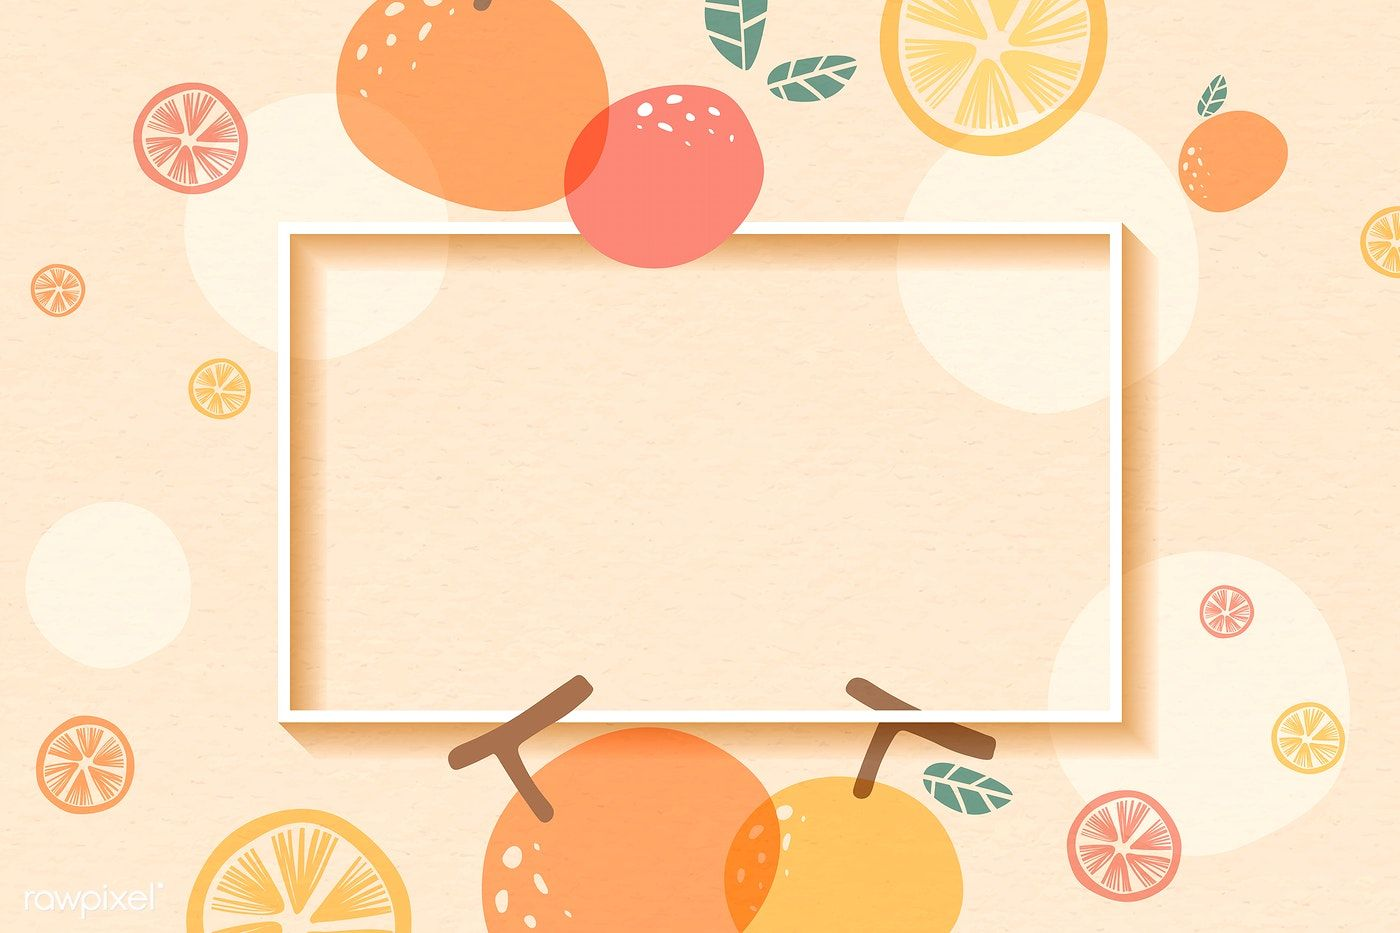 Download Premium Vector Of Frame On An Orange Patterned Background With Frame Graphic Design Background Templates Note Doodles